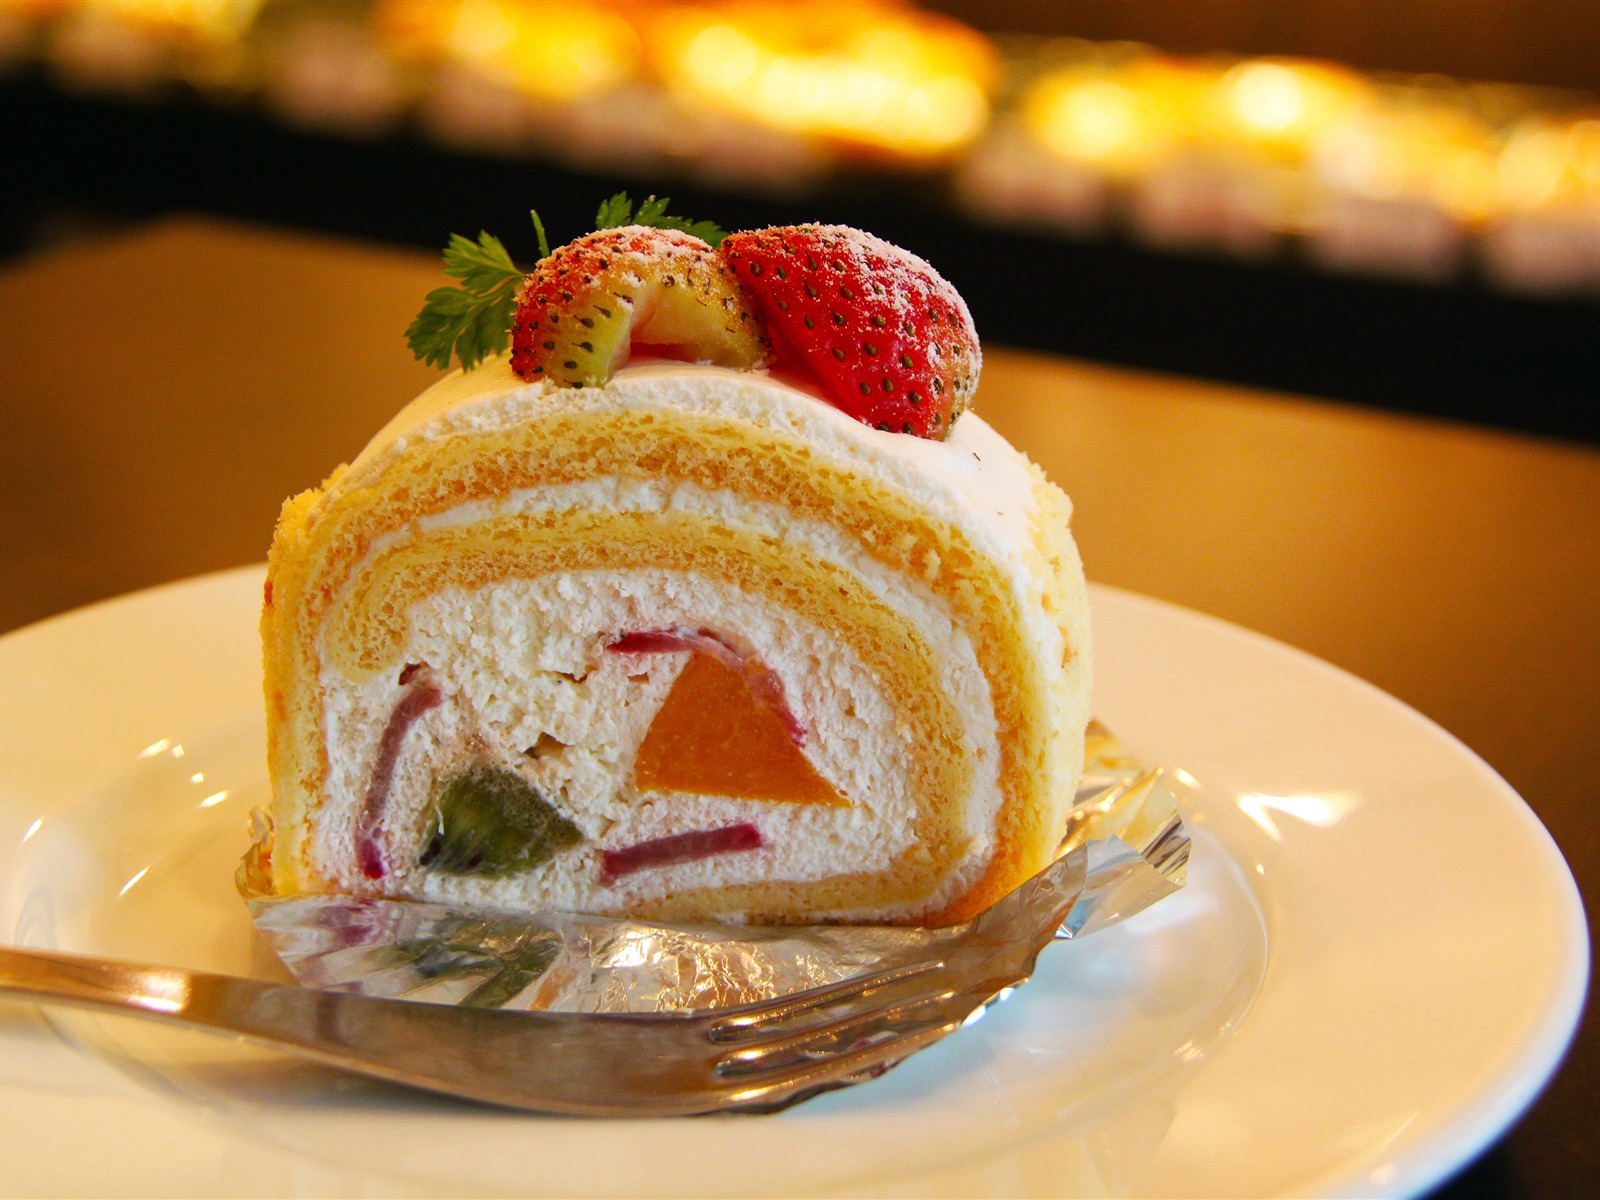 Sweet fruit strawberry cake close-up - 1600x1200 wallpaper download